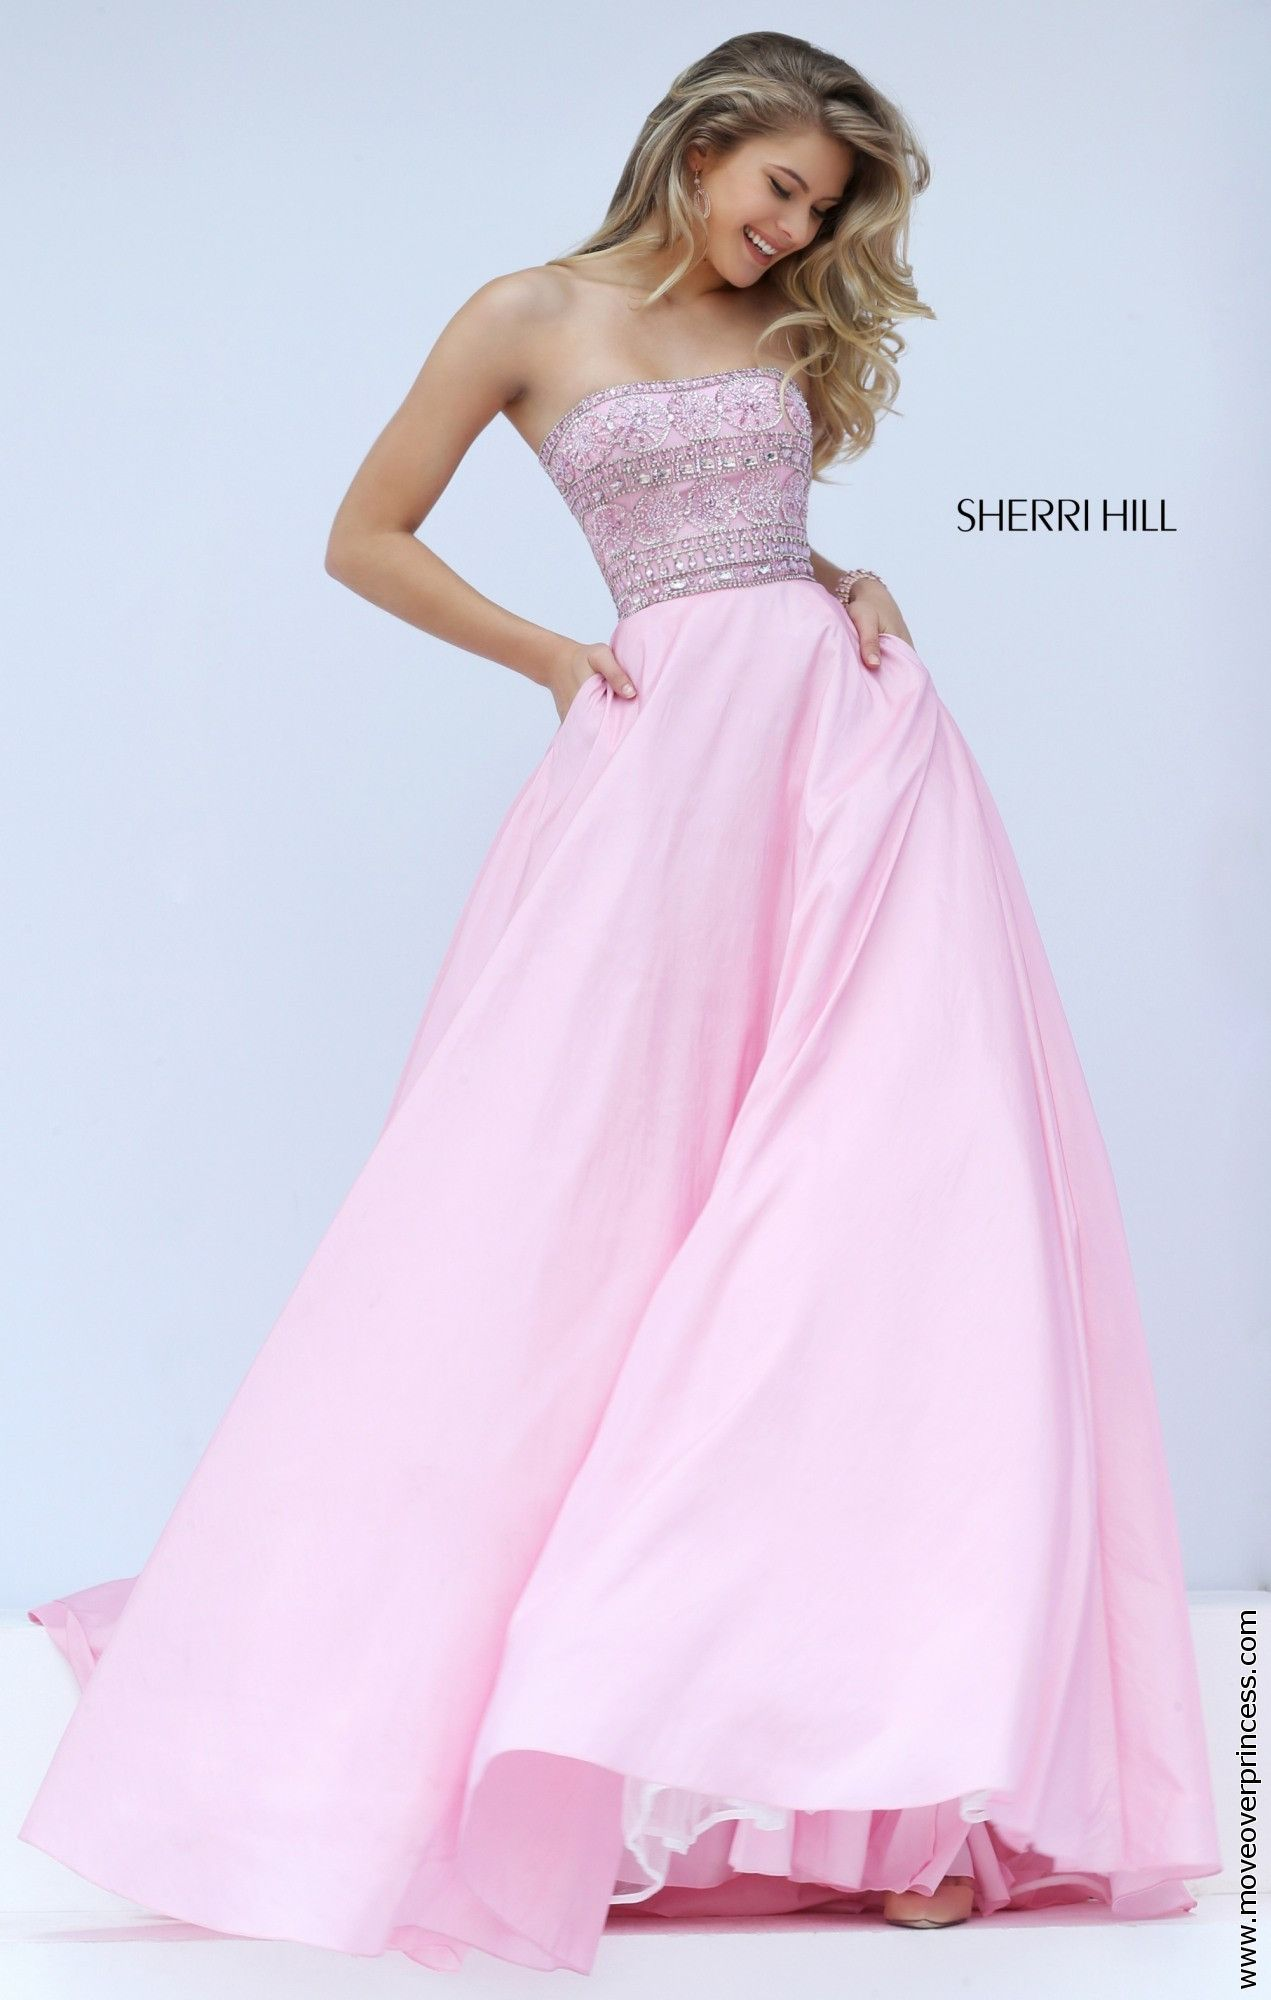 Sherri hill strapless gown full skirts and bodice